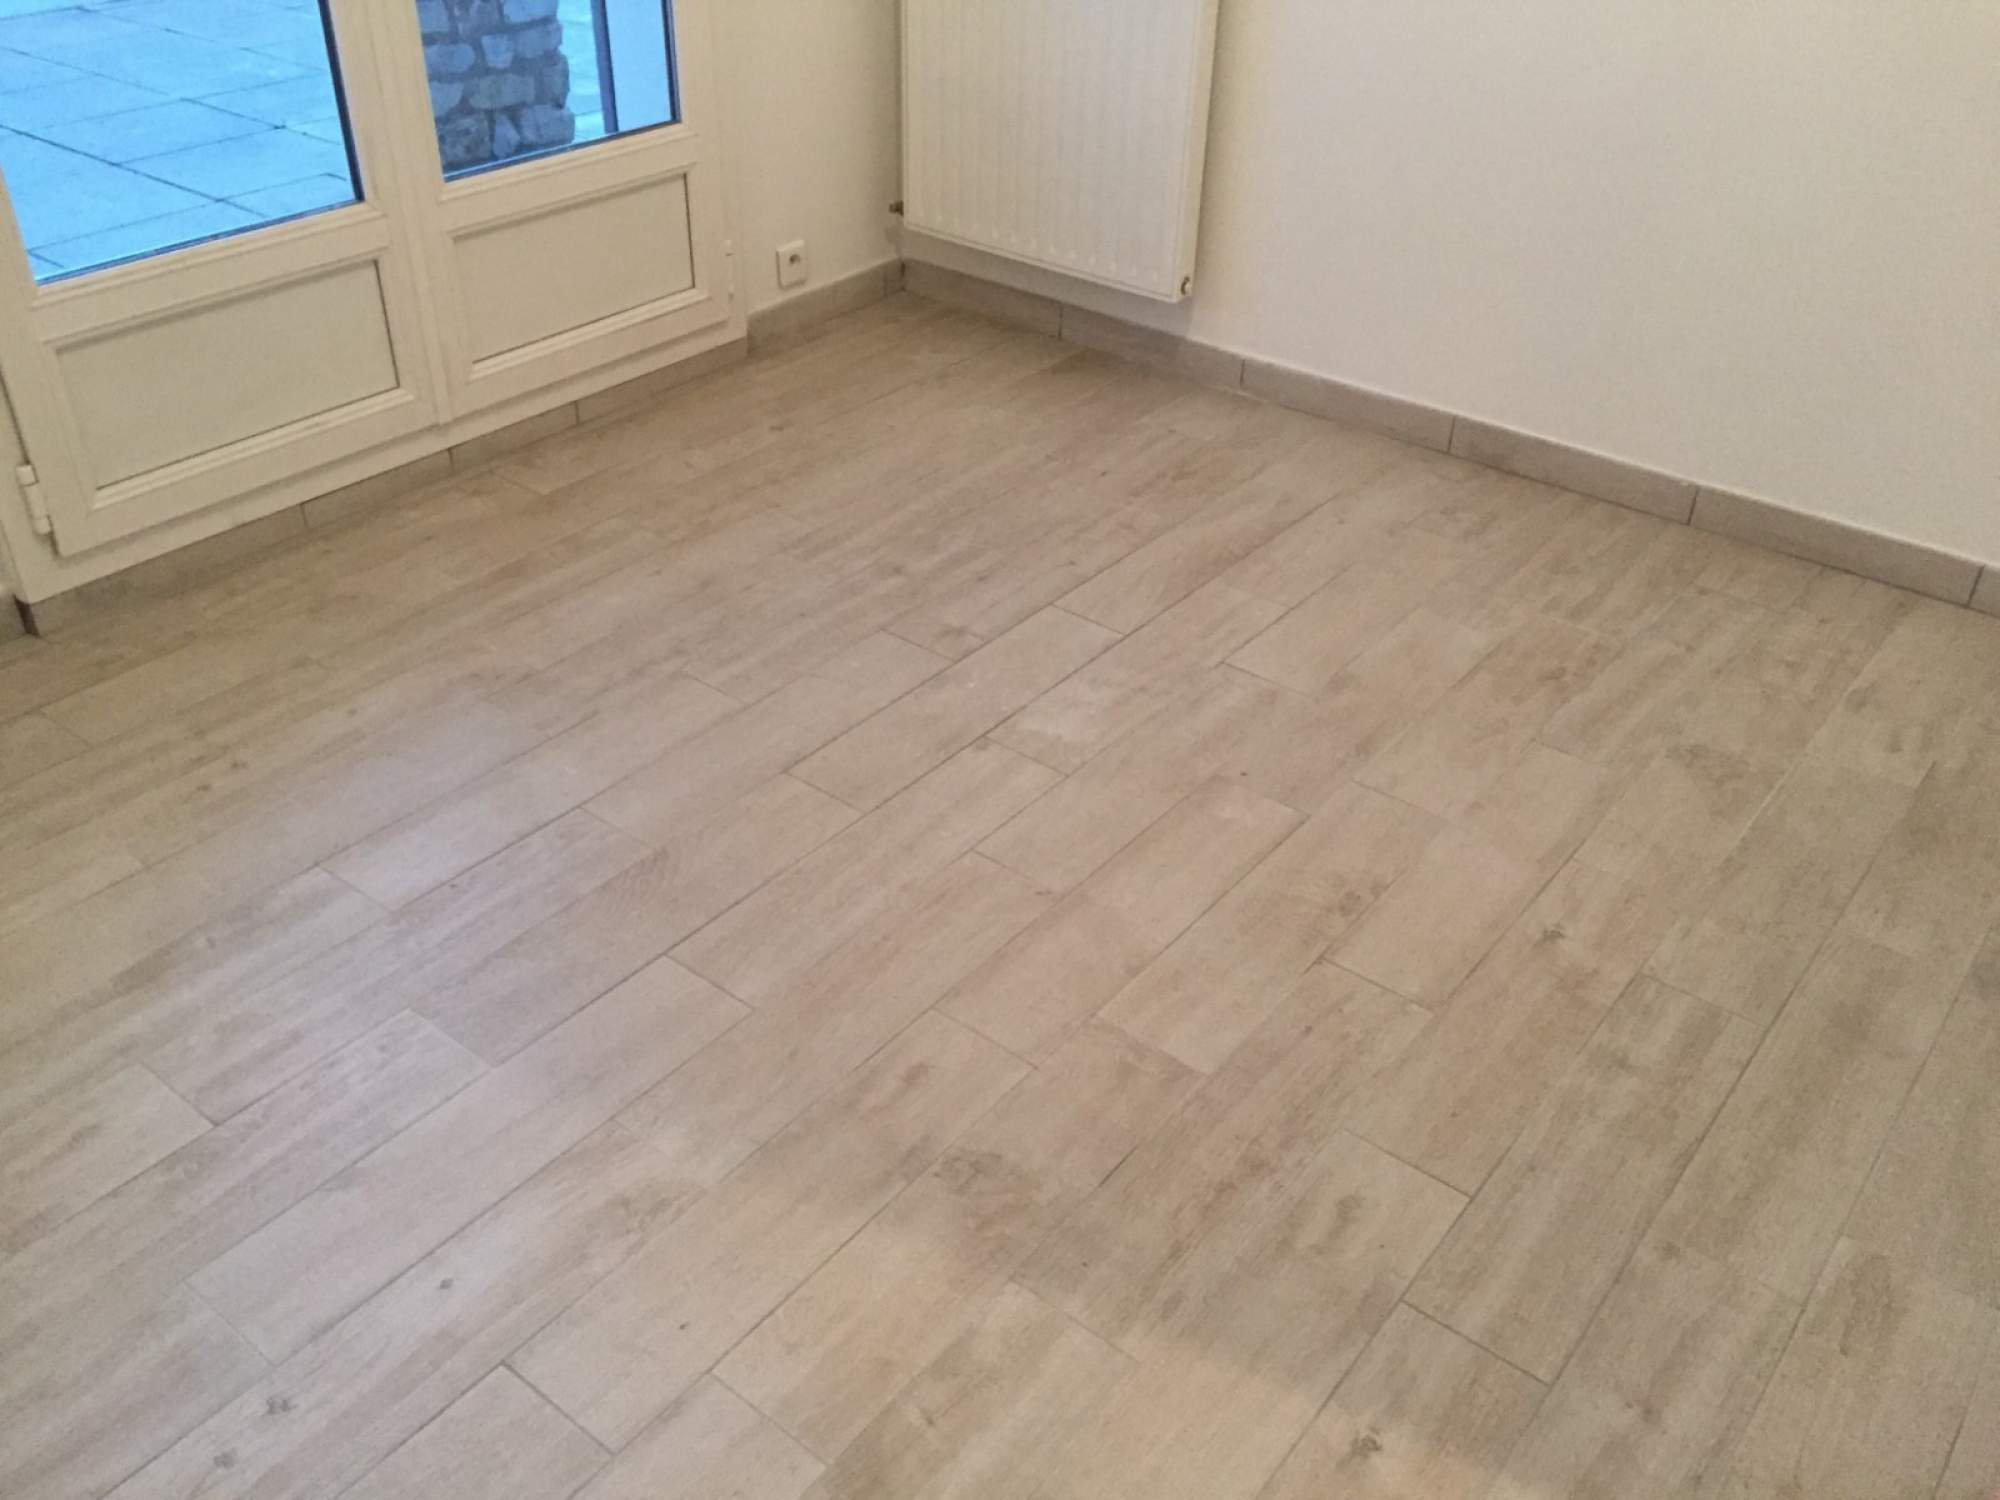 Carrelage imitation parquet pose for Carrelage imitation parquet